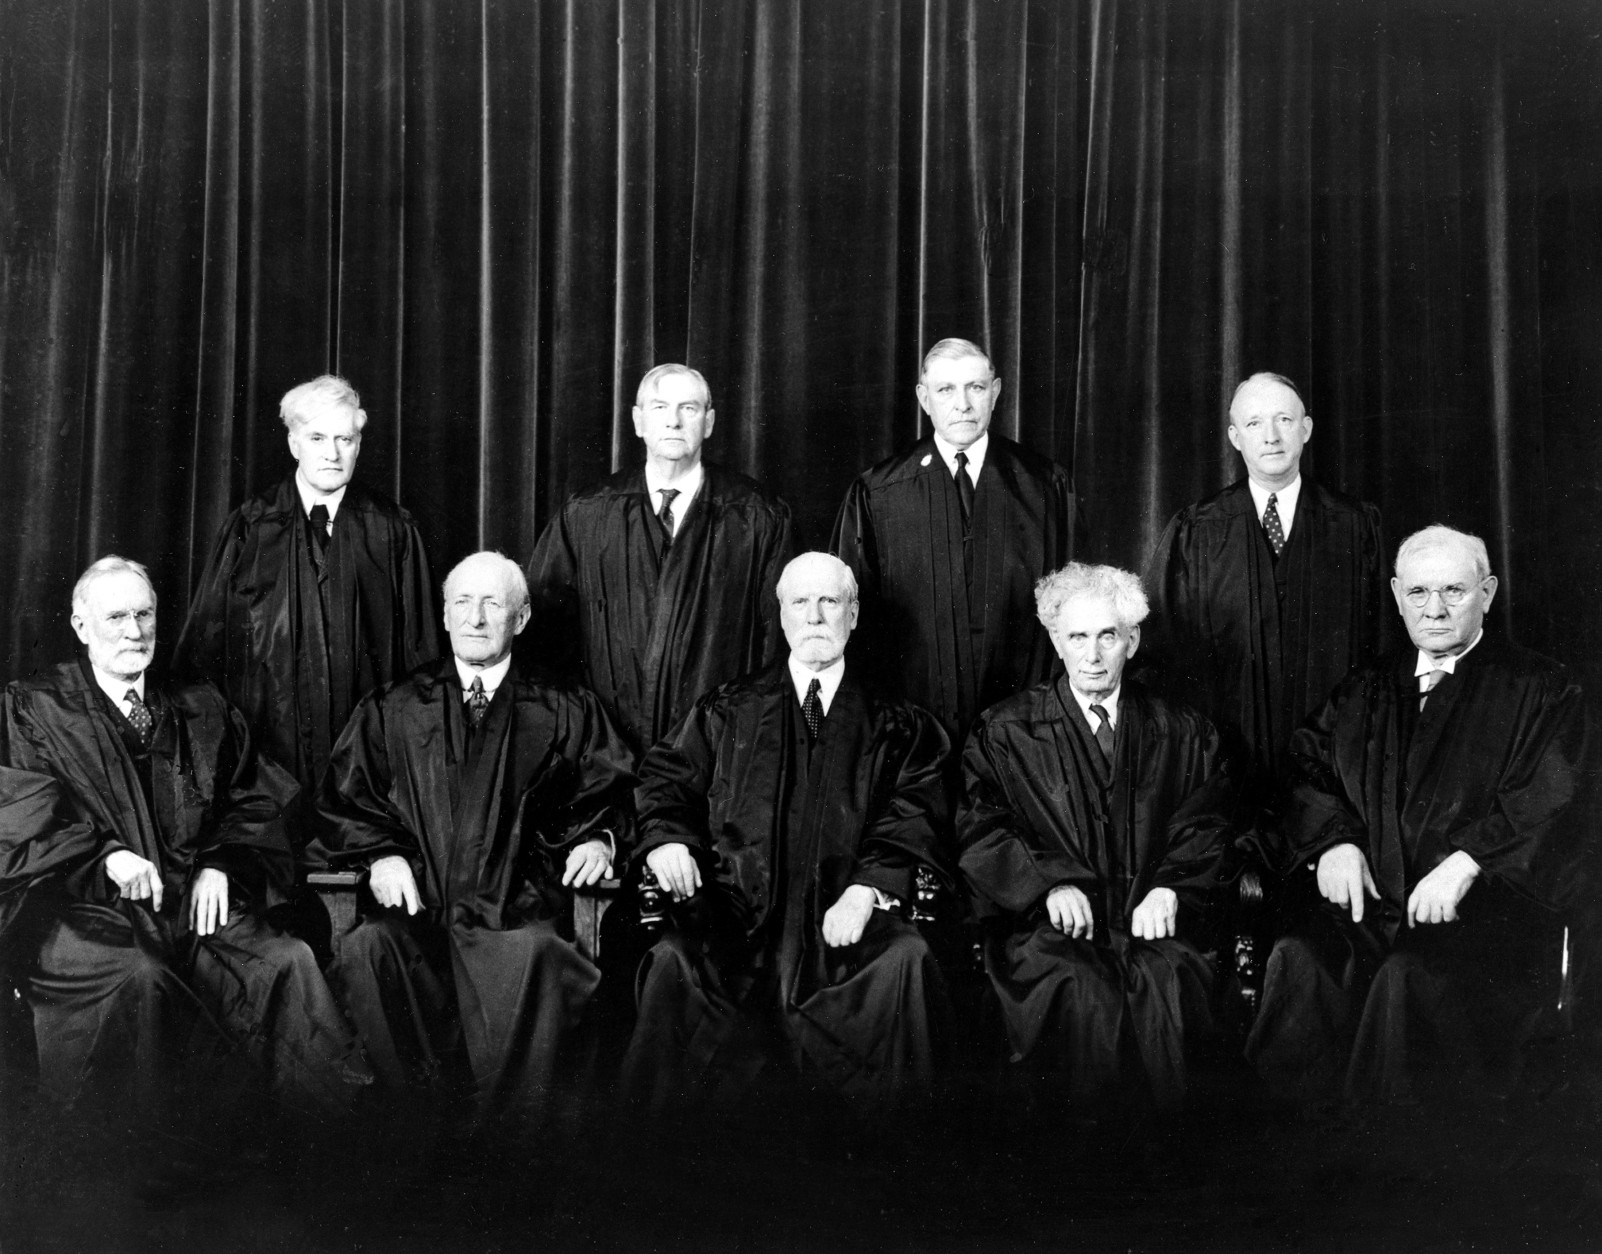 Associated Press Domestic News Dist. of Columbia United States U.S. SUPREME COURT JUSTICES 1937